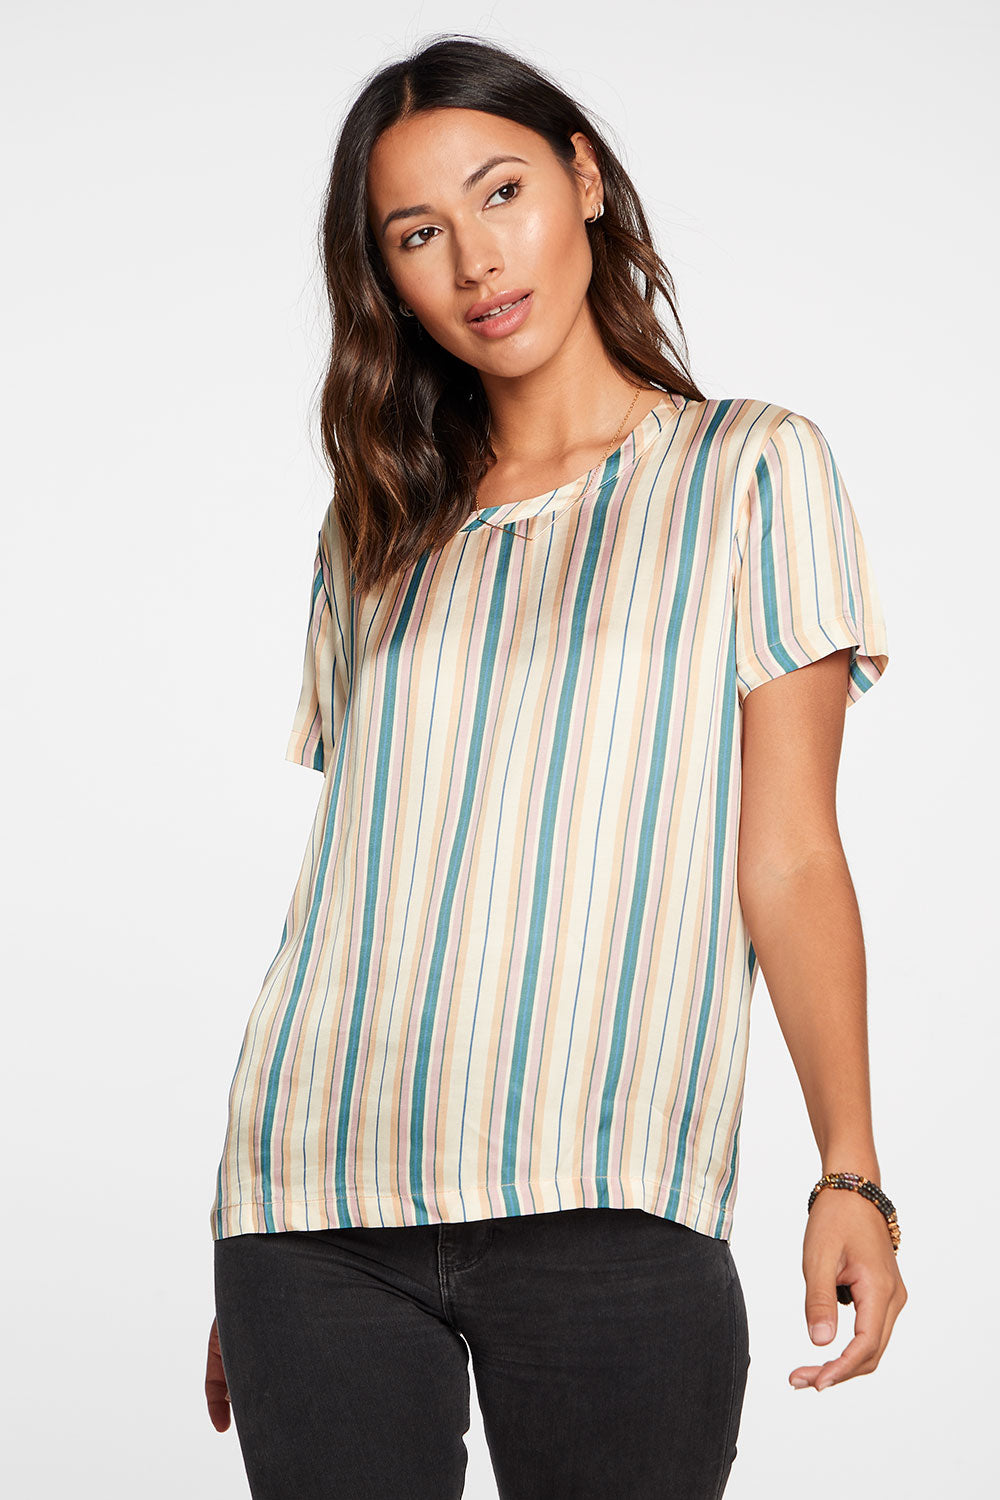 Silky Basics Short Sleeve Easy Tee in Stripe WOMENS chaserbrand4.myshopify.com